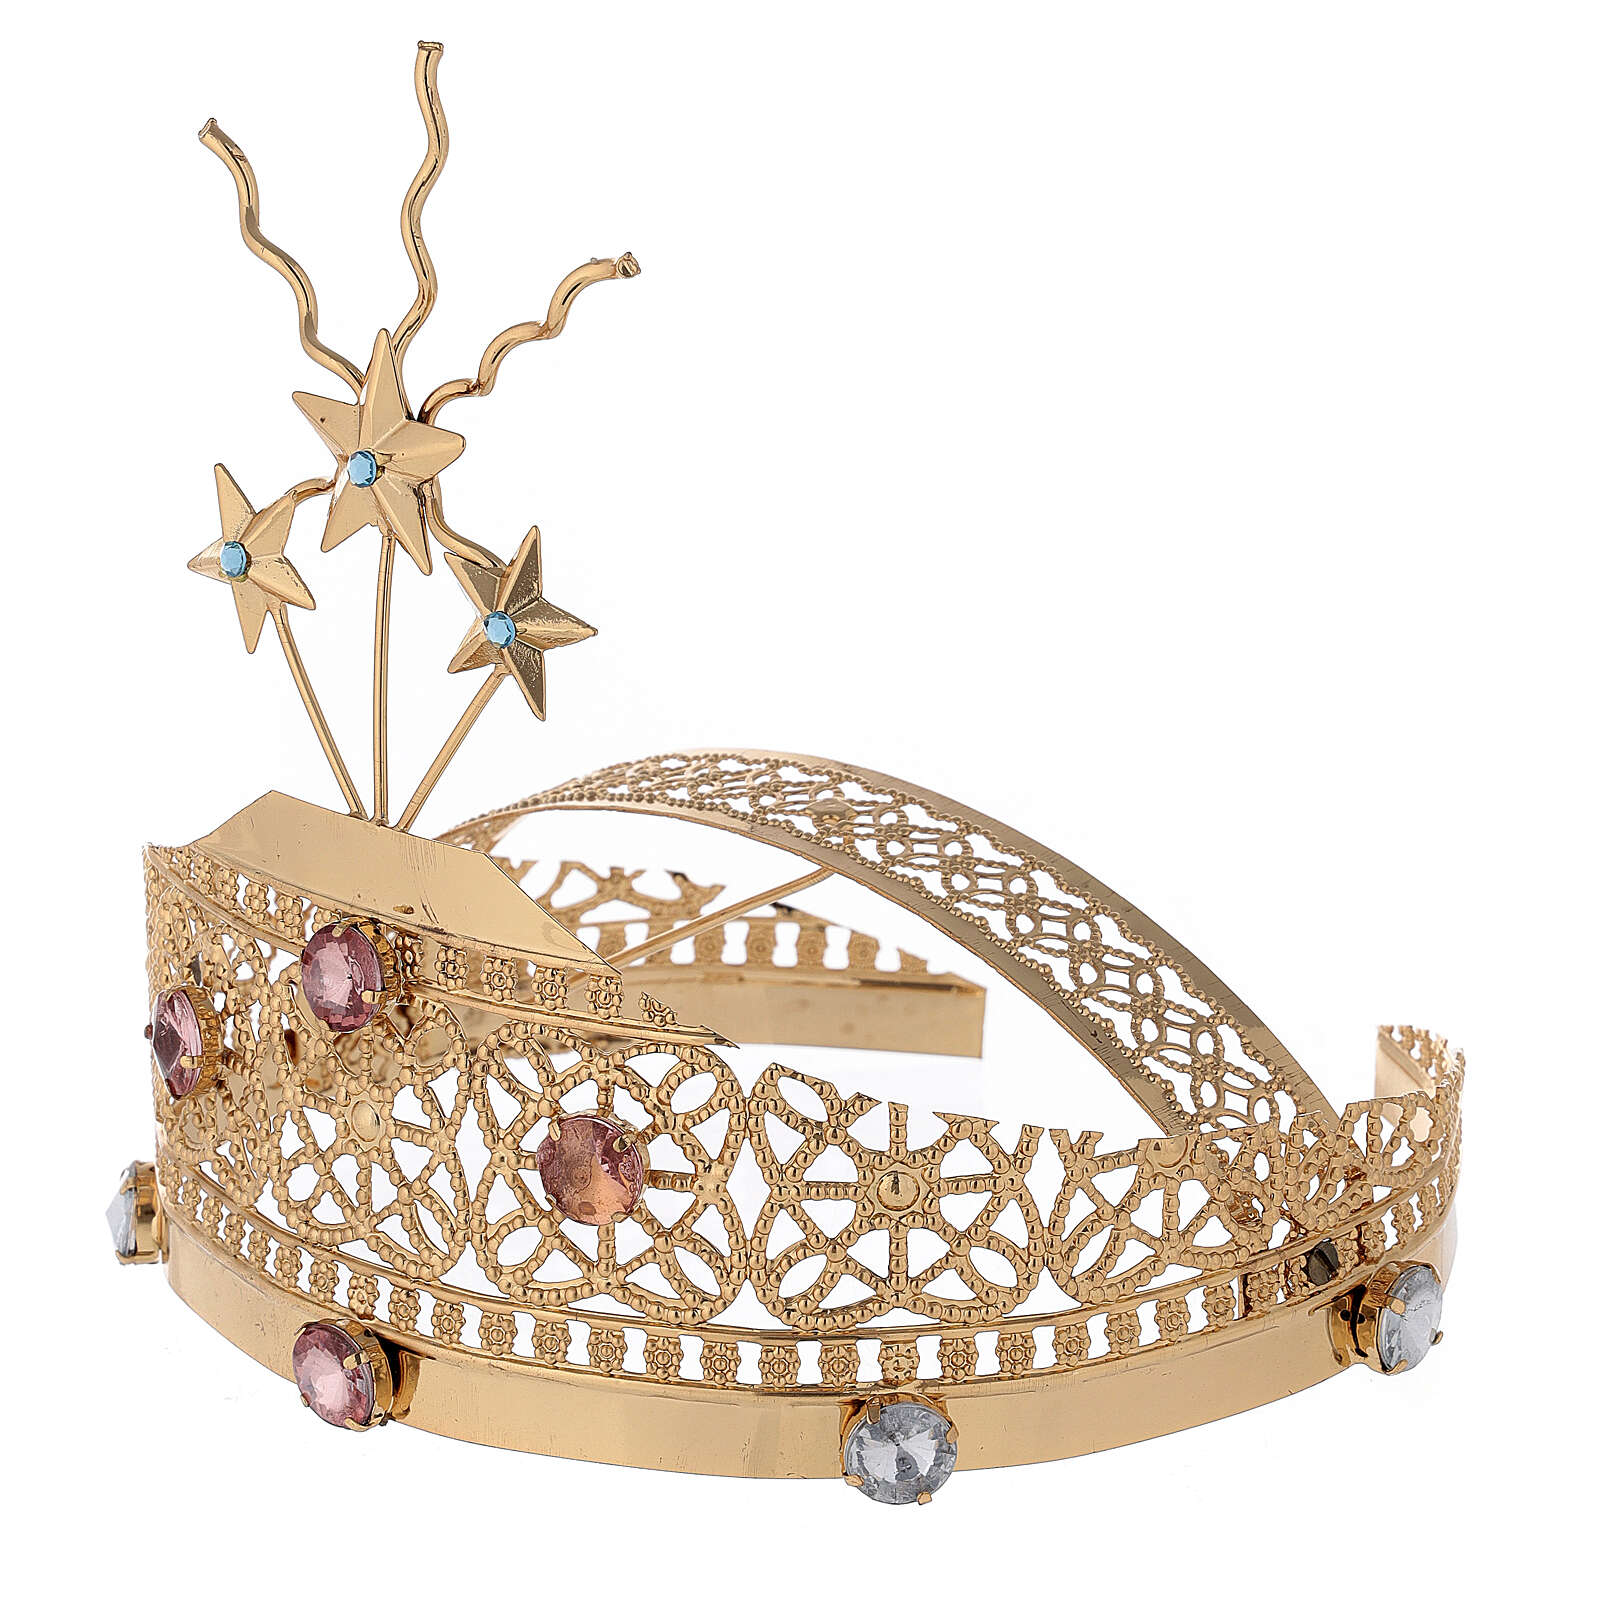 Tiara for Statues in Gold-Plated Filigree and Colored Stones 3